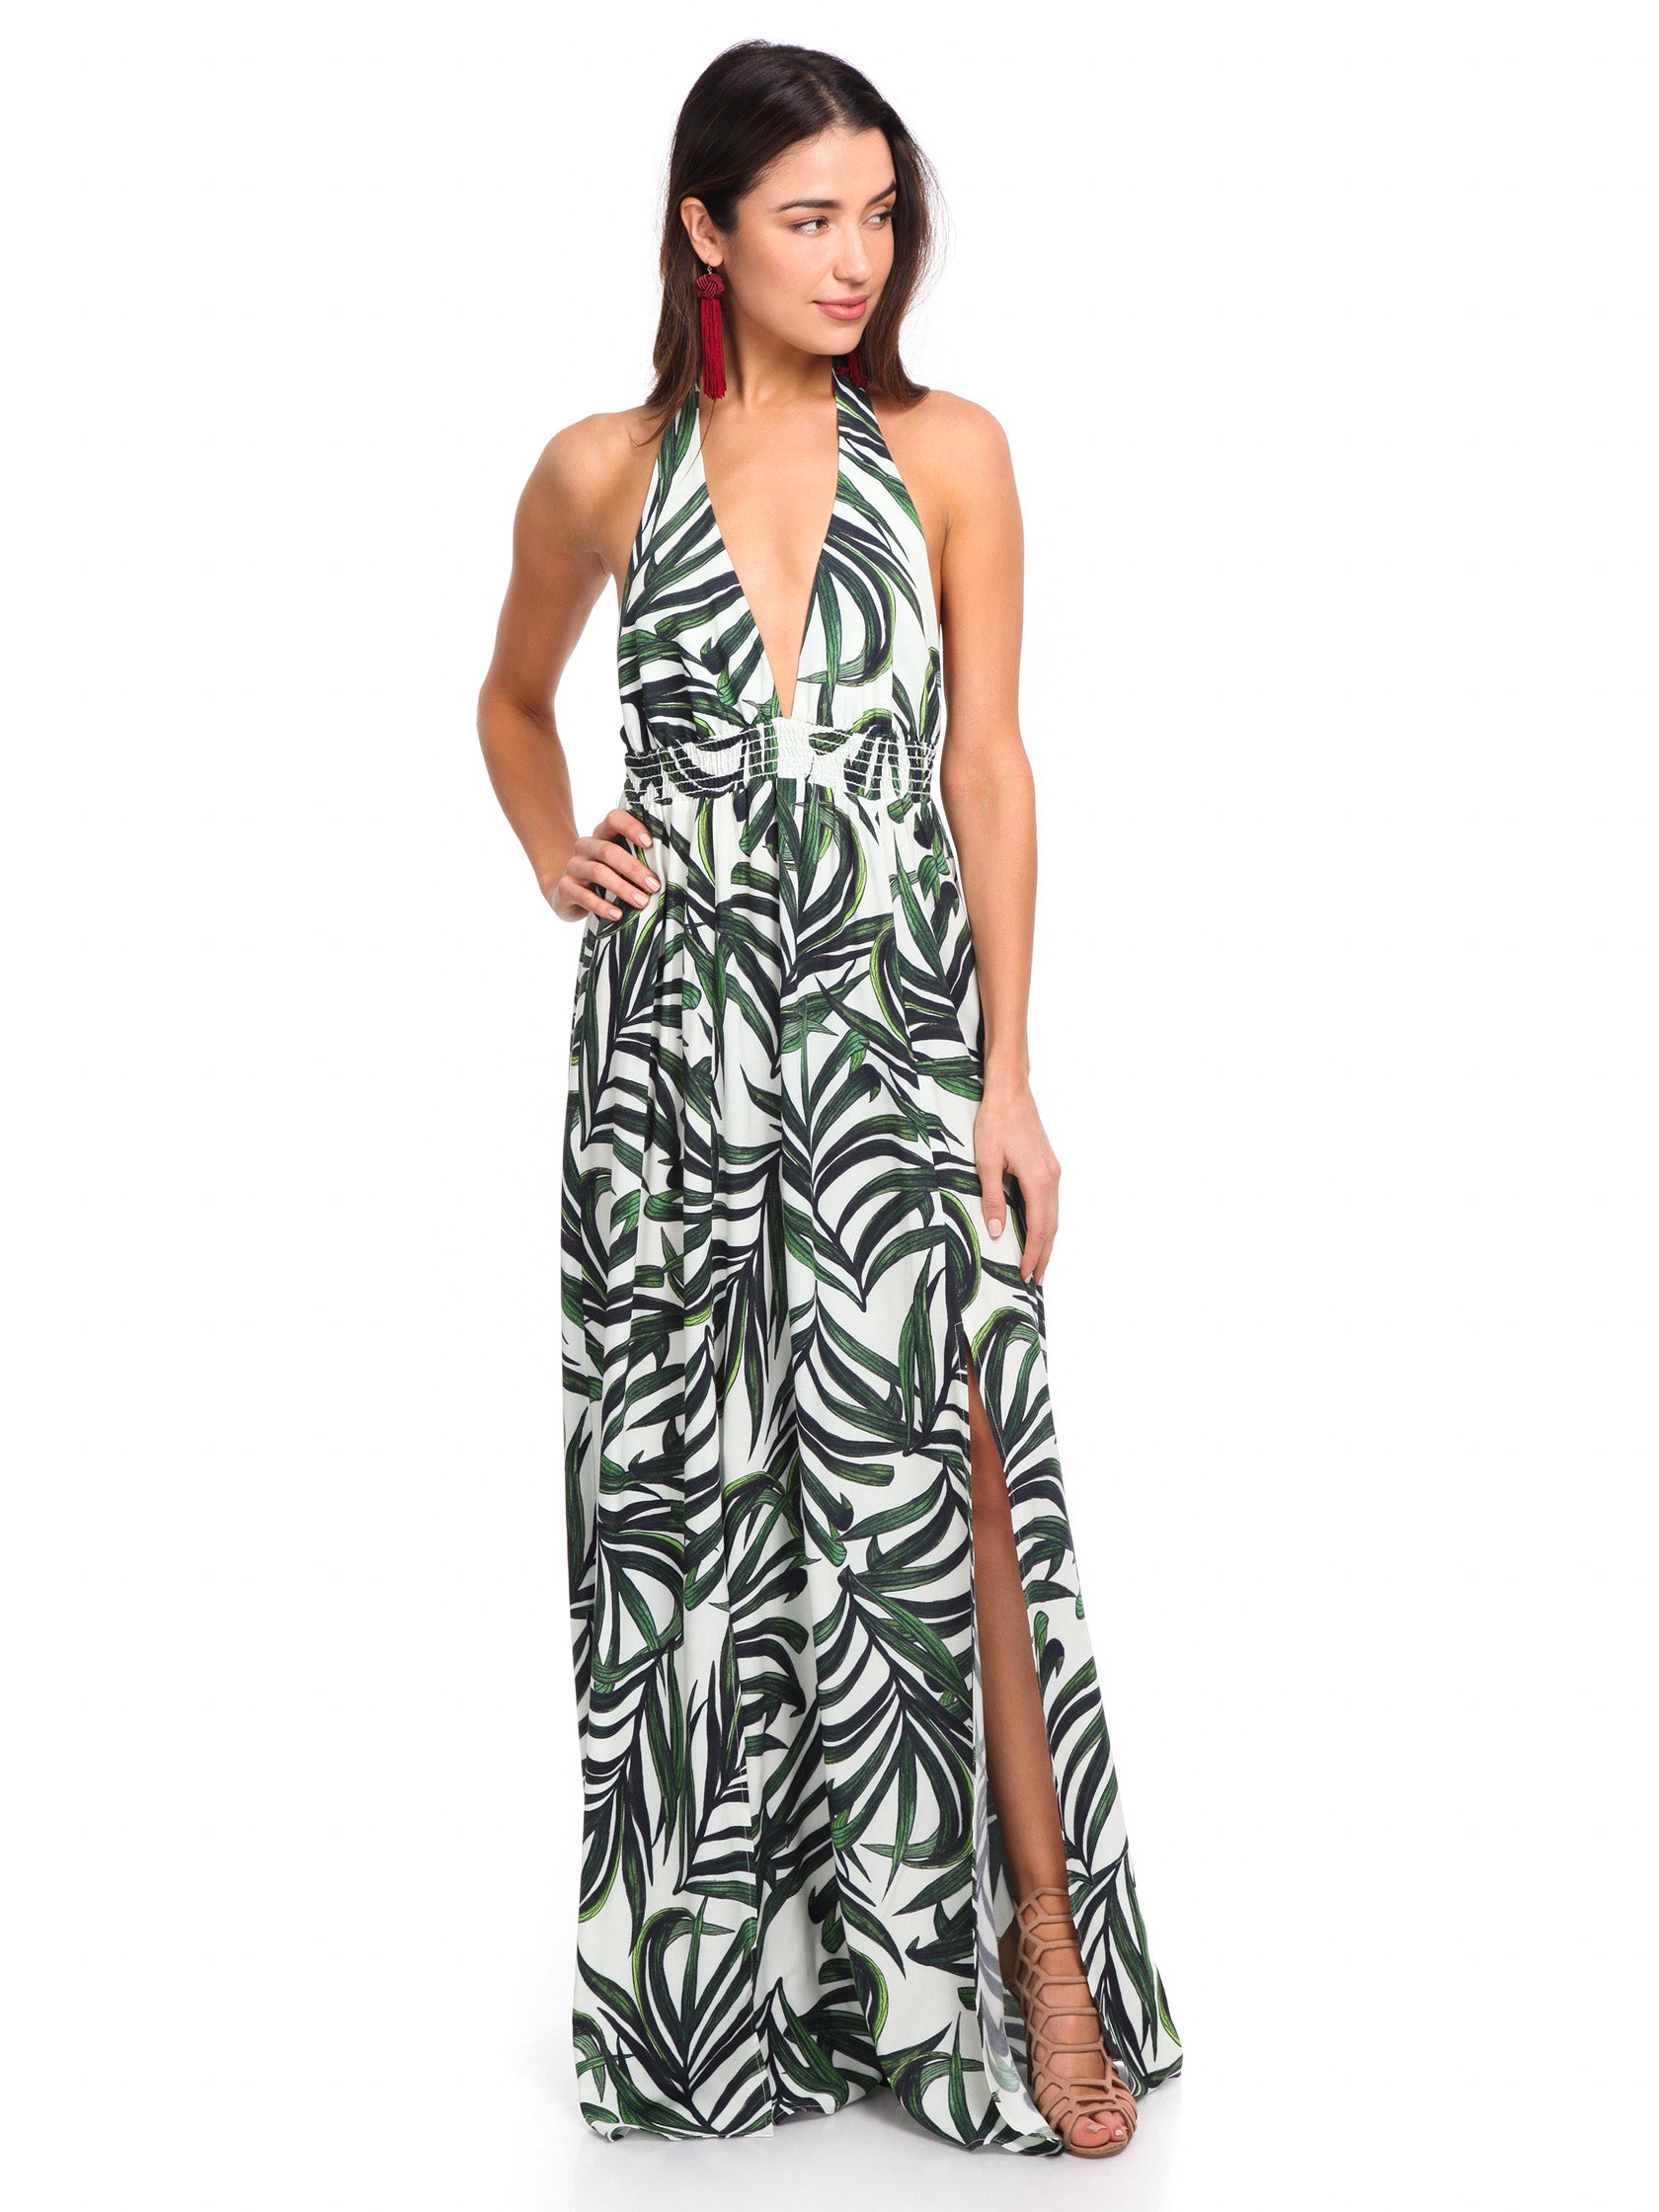 Girl outfit in a dress rental from Show Me Your Mumu called Vacation Maxi